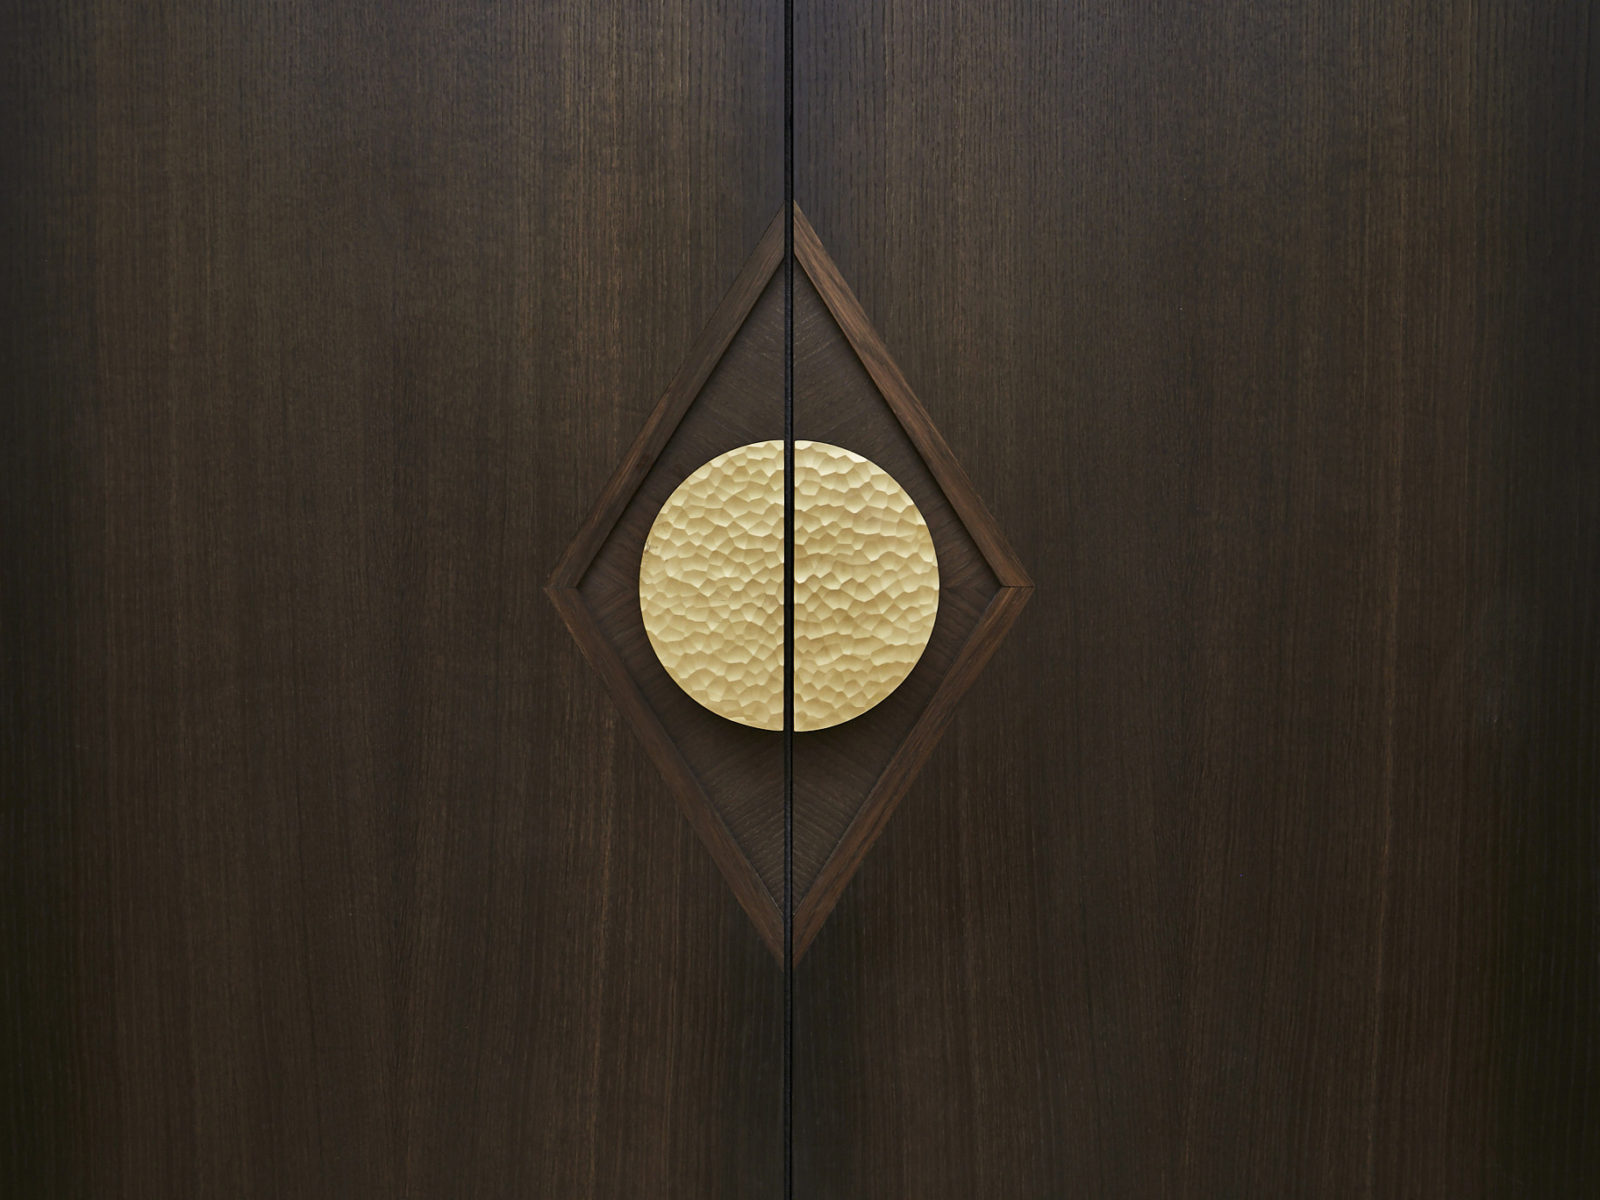 Bespoke fumed oak door with diamond motif and Ged Kennet handle